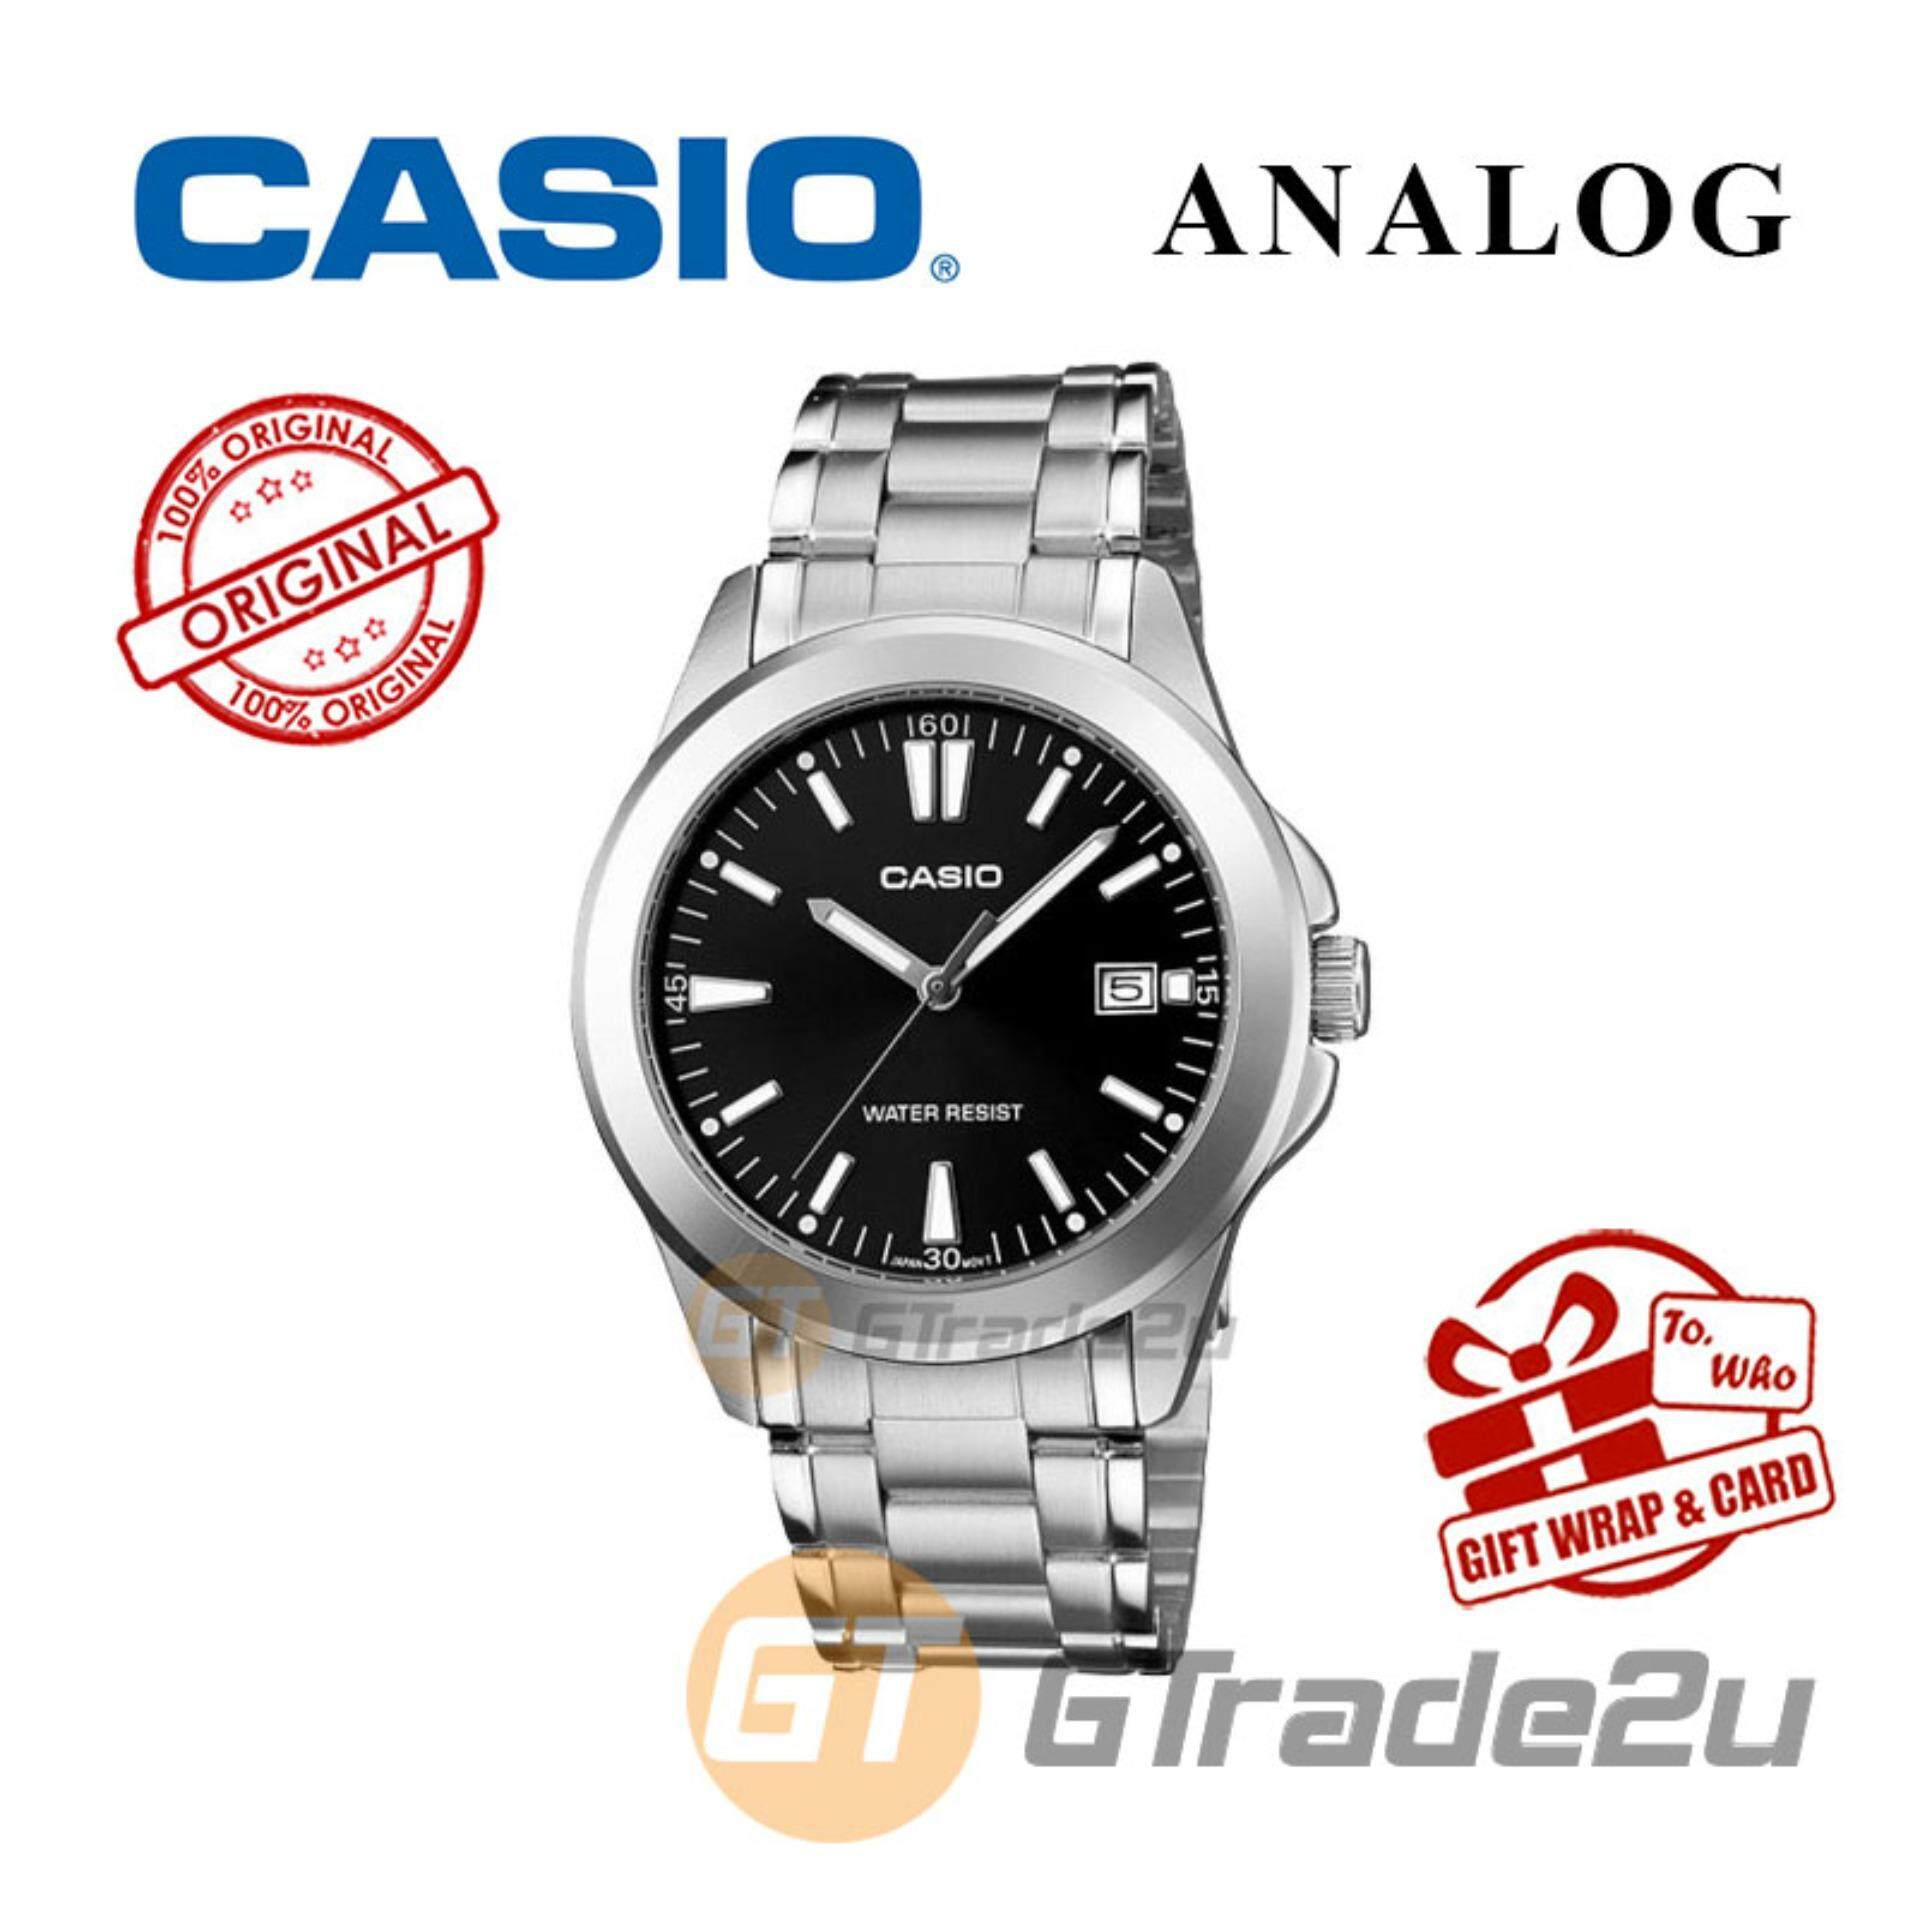 Casio Watches With Best Price At Lazada Malaysia Outgear Sgw 300hd 1av Jam Tangan Pria Strap Stainless Steel Silver Classic Analog Mtp 1215a 1a2v Men Watch